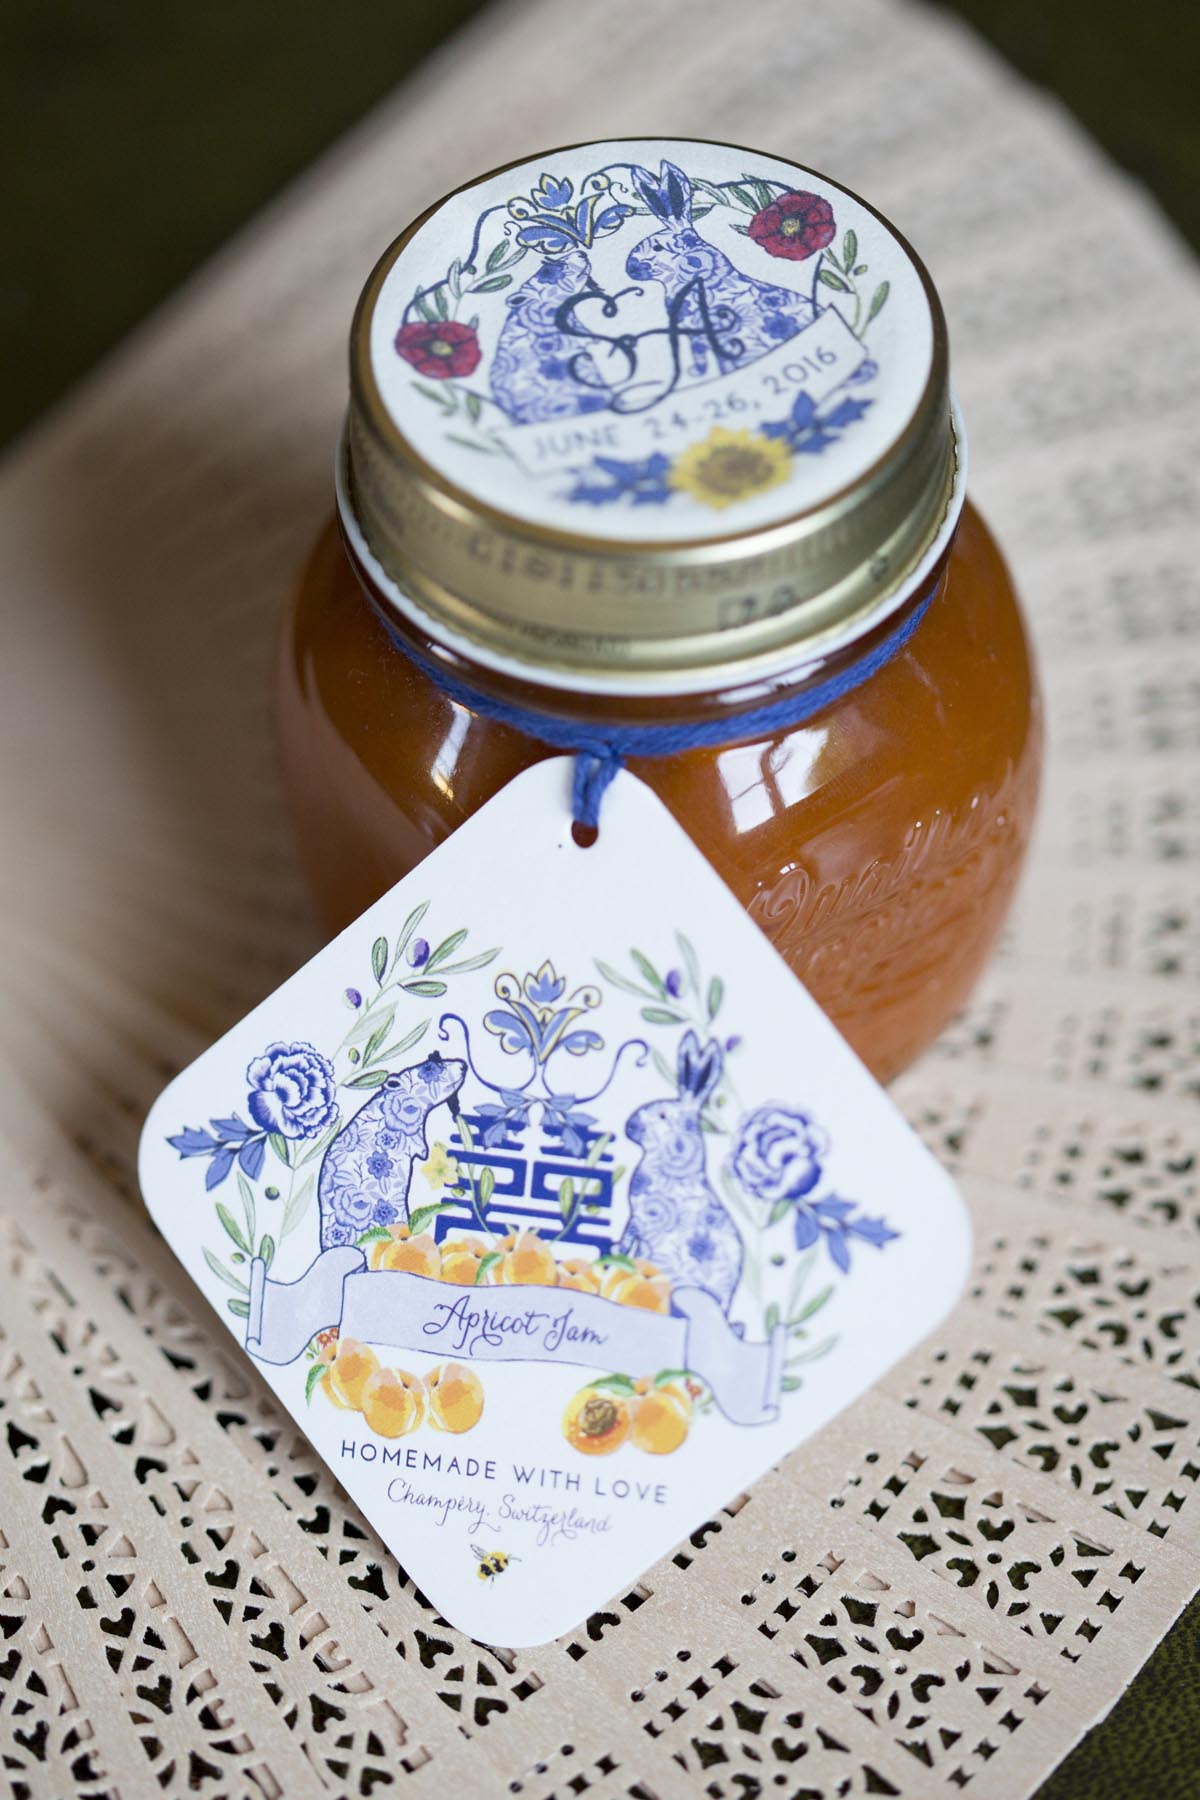 Tuscany-wedding-marmalade-jam-favors-with-a-chinese-symbol-label